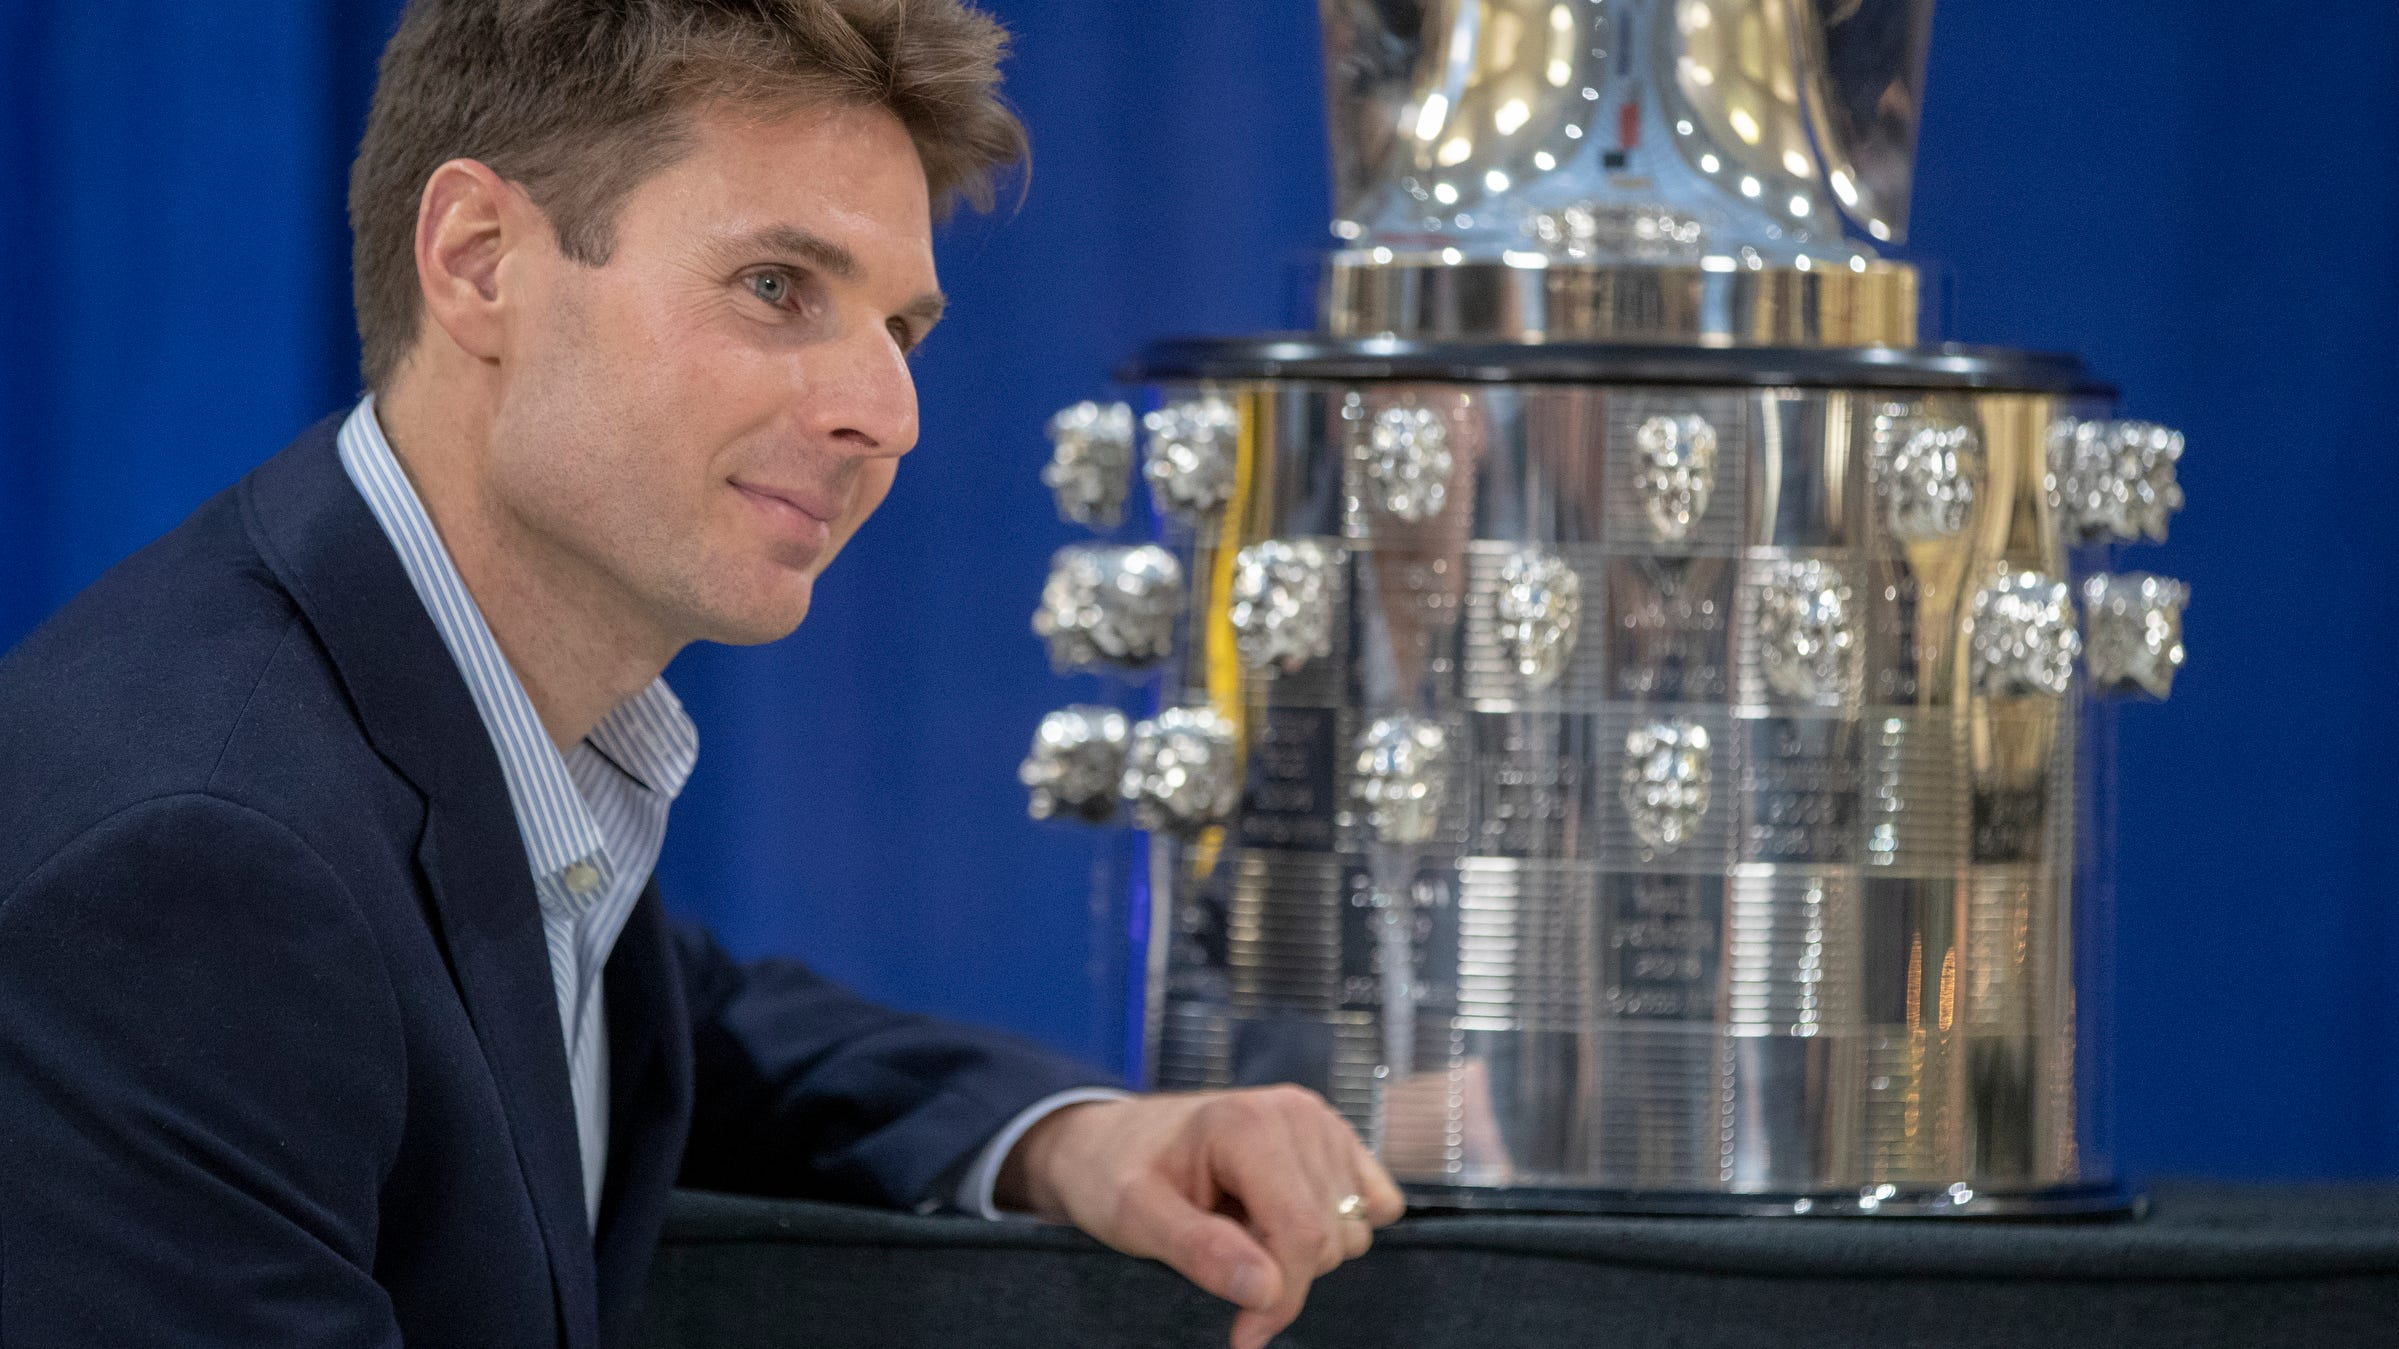 Will Power poses for photographers' cameras after his likeness was unveiled on the Borg-Warner trophy, Indianapolis Motor Speedway, Wednesday, Dec. 5, 2018. Power is an Australian driver with Team Penske, and is the 105th face on the trophy.